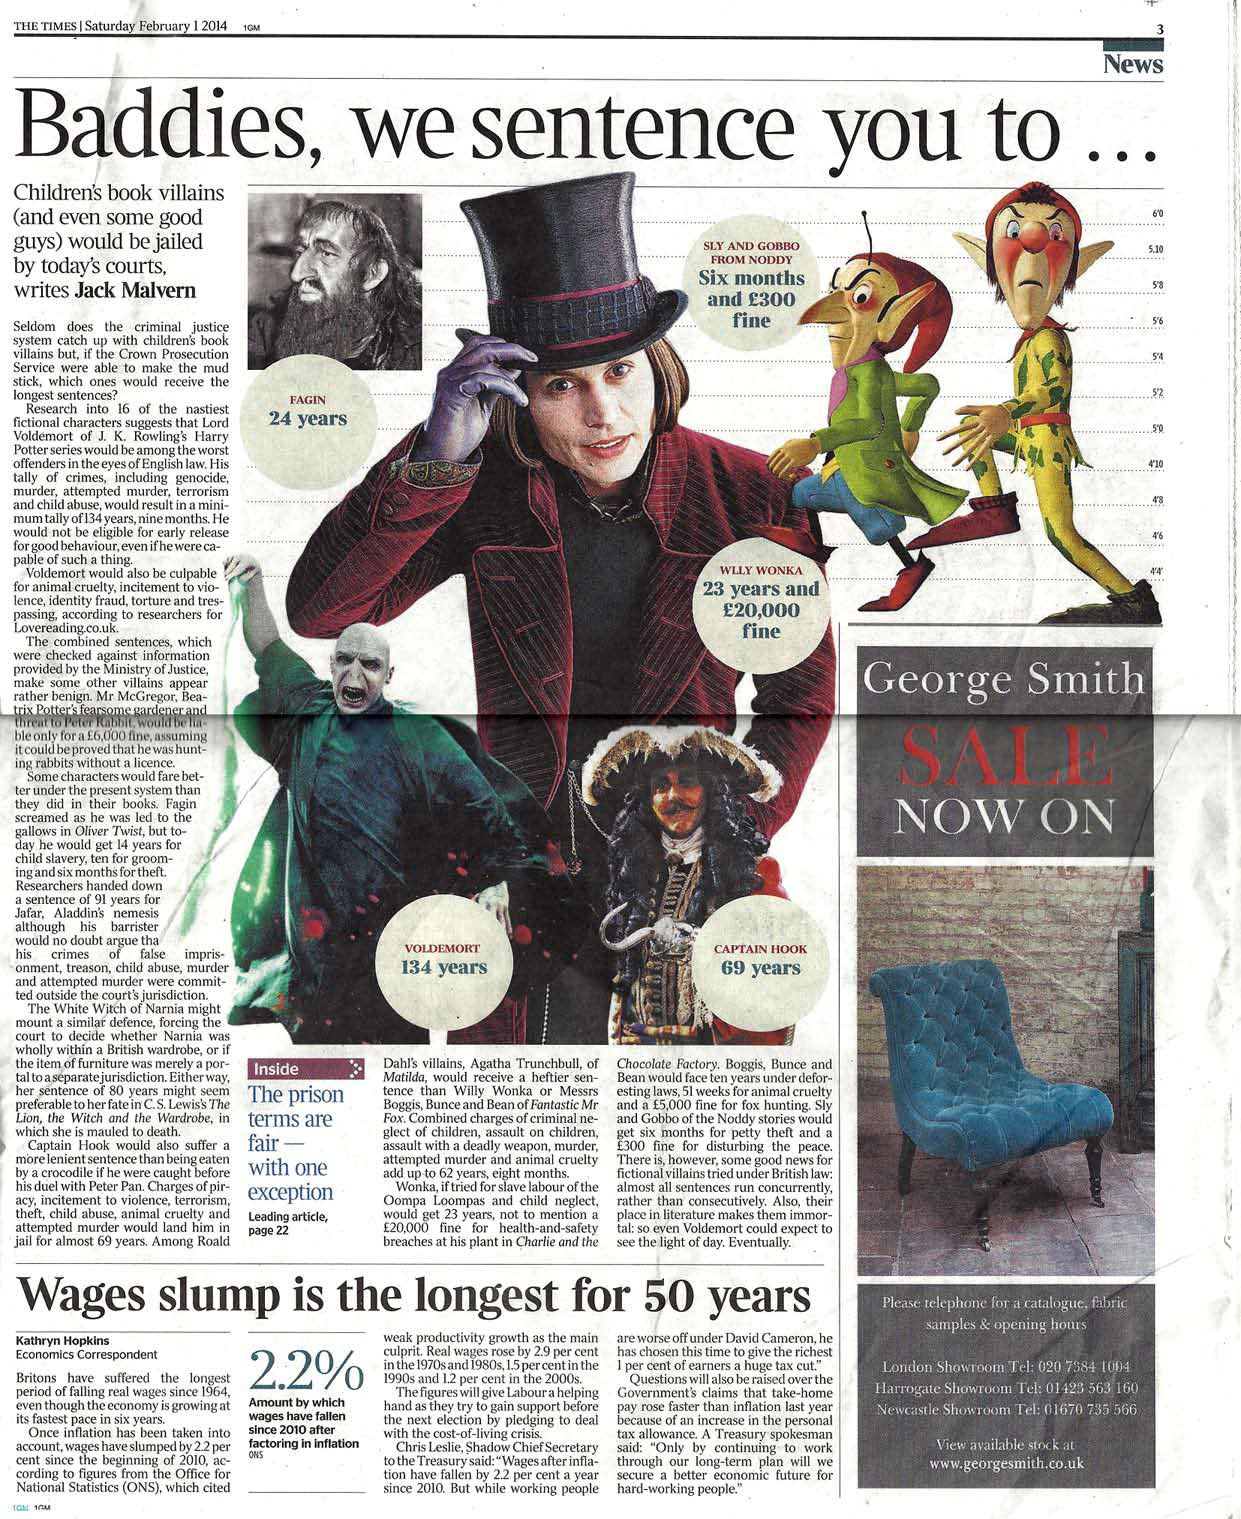 times-page3